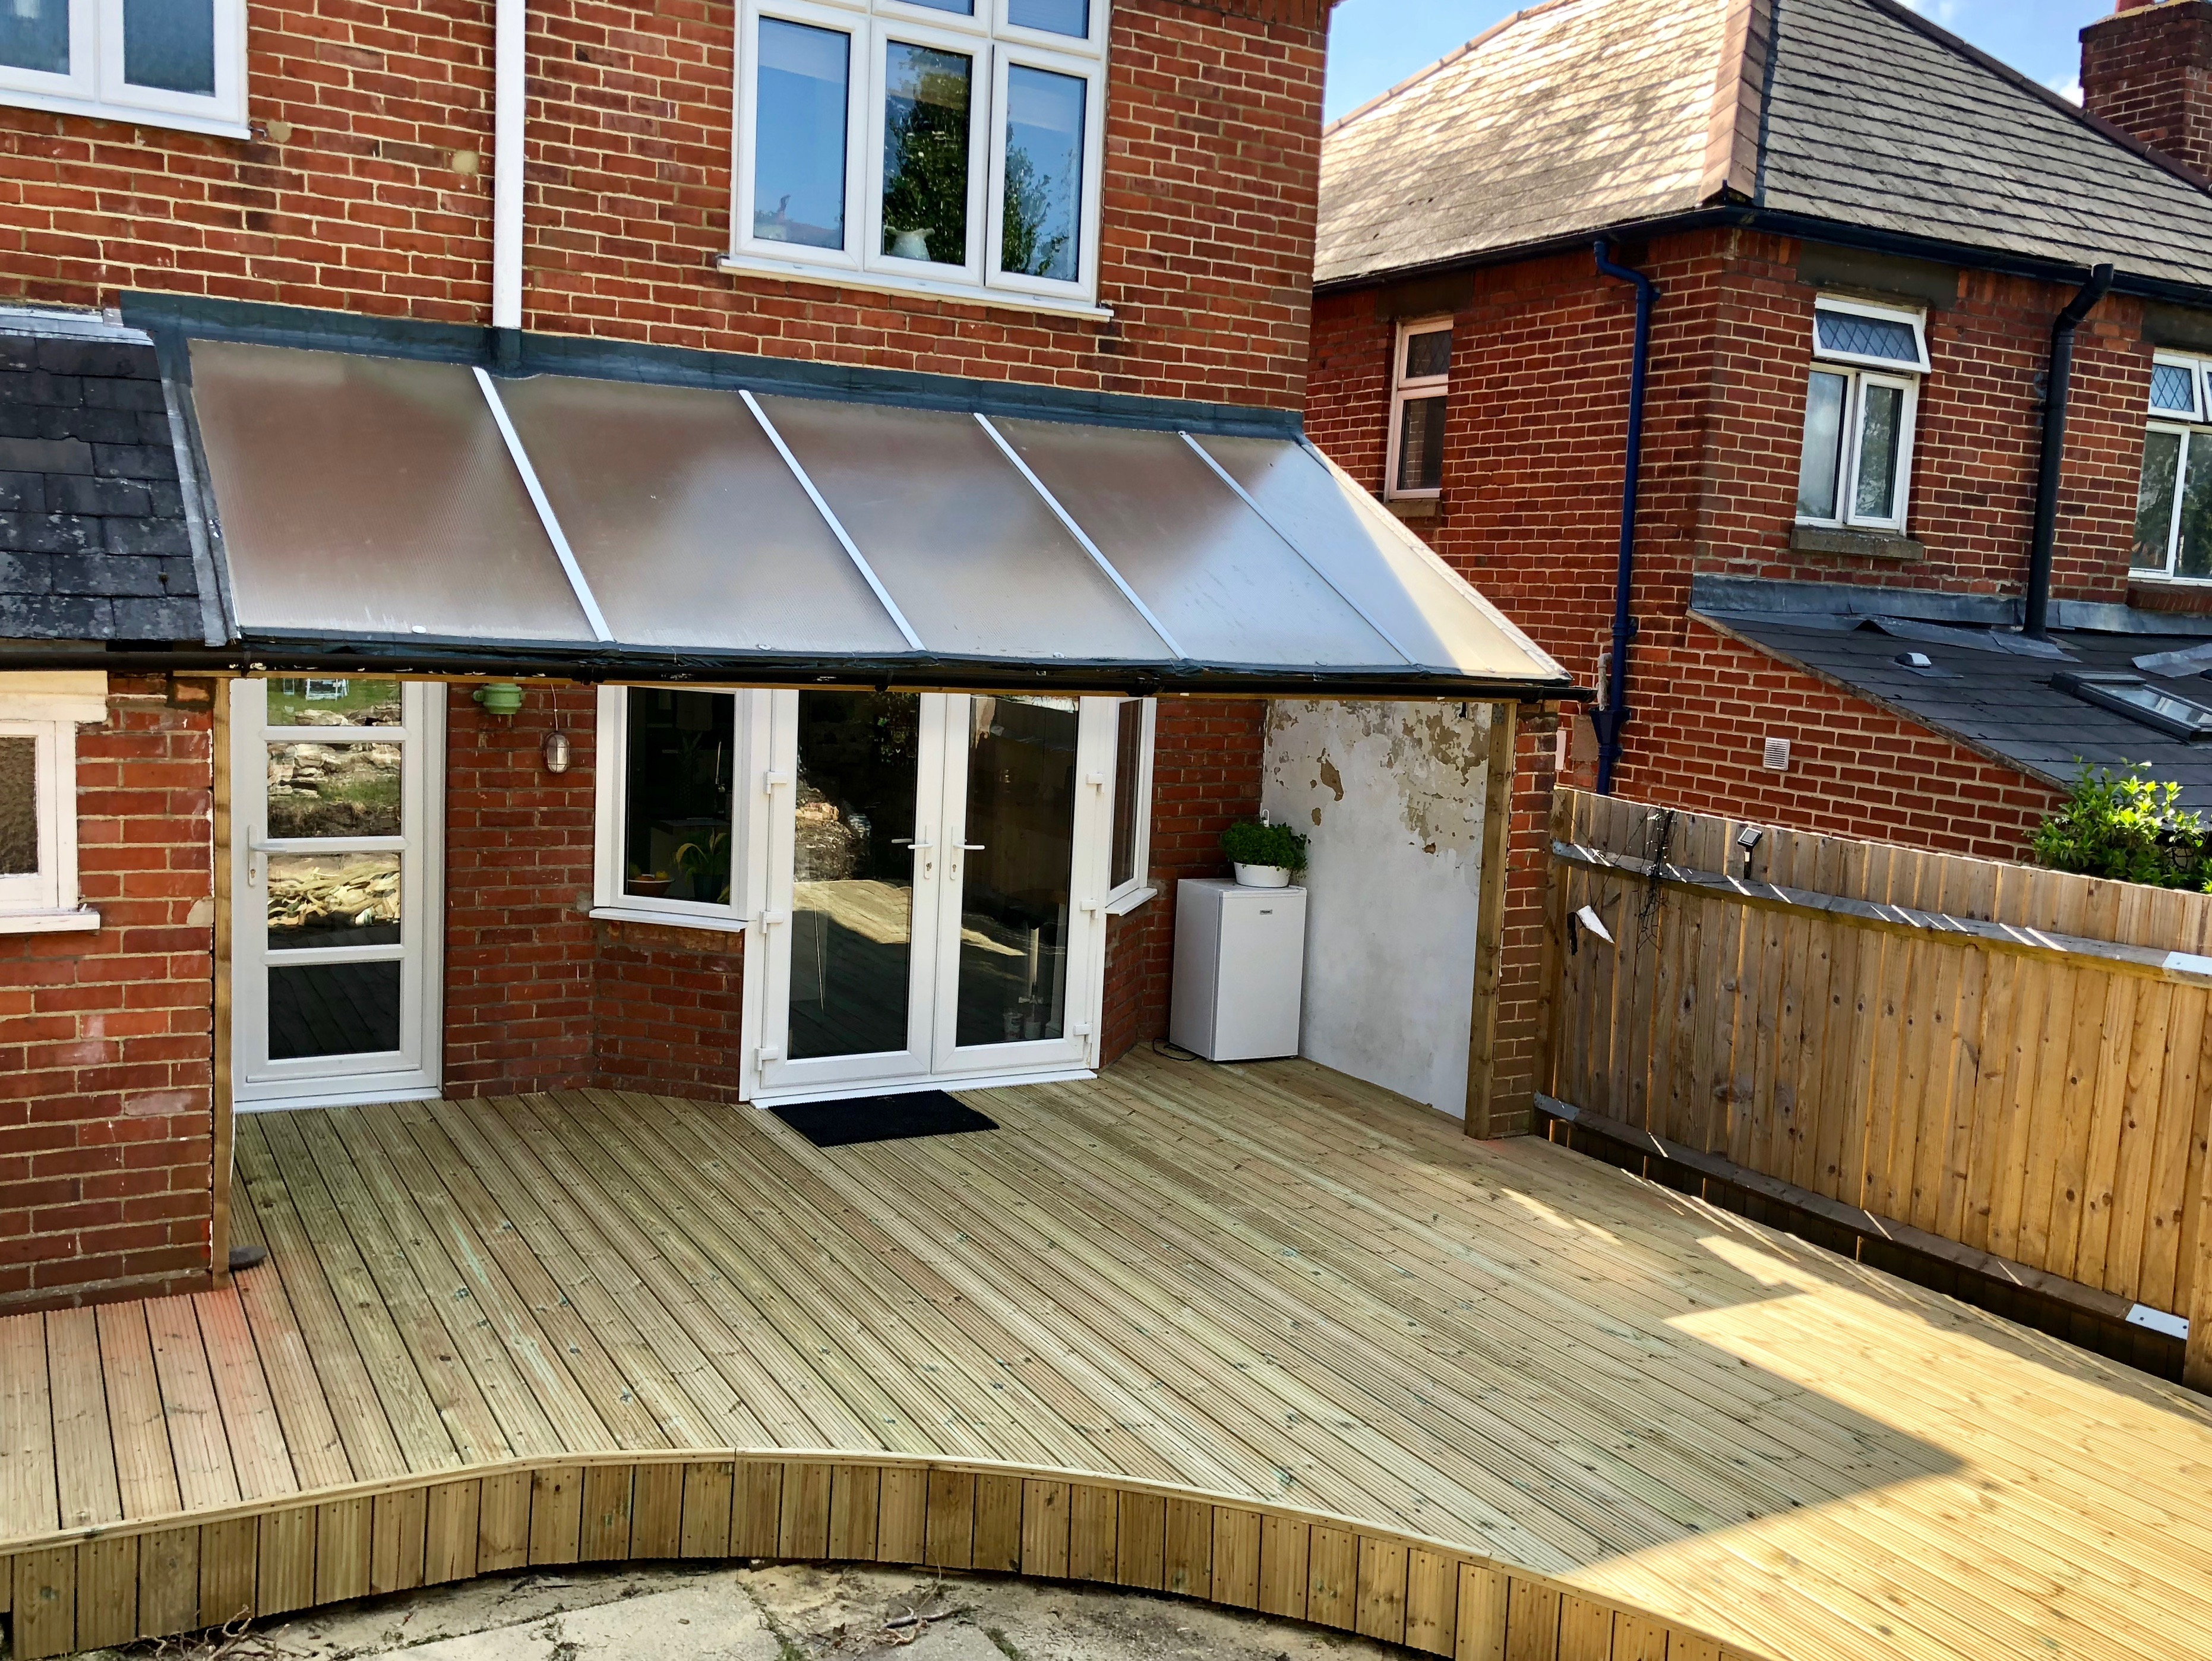 Southampton Softwood Decking and Modernising the Lean to Roof